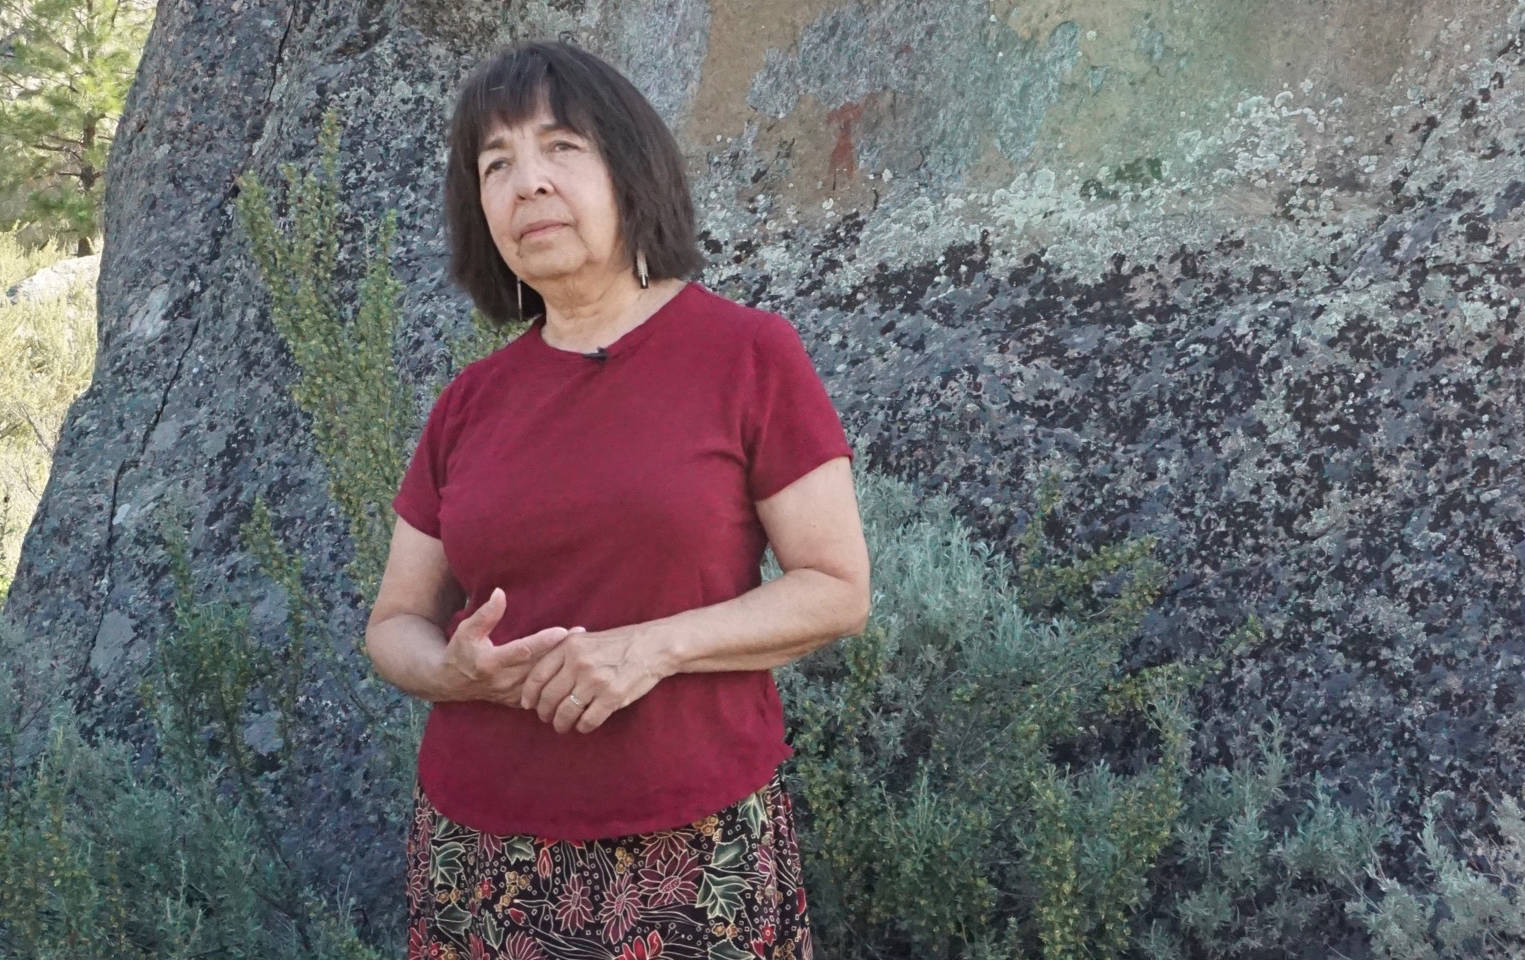 Sheri Stelkia, an elder in the Osoyoos Indian Band, shares stories with visitors stories about how the Okanagan people were self-reliant and well provided for through their own ingenuity.